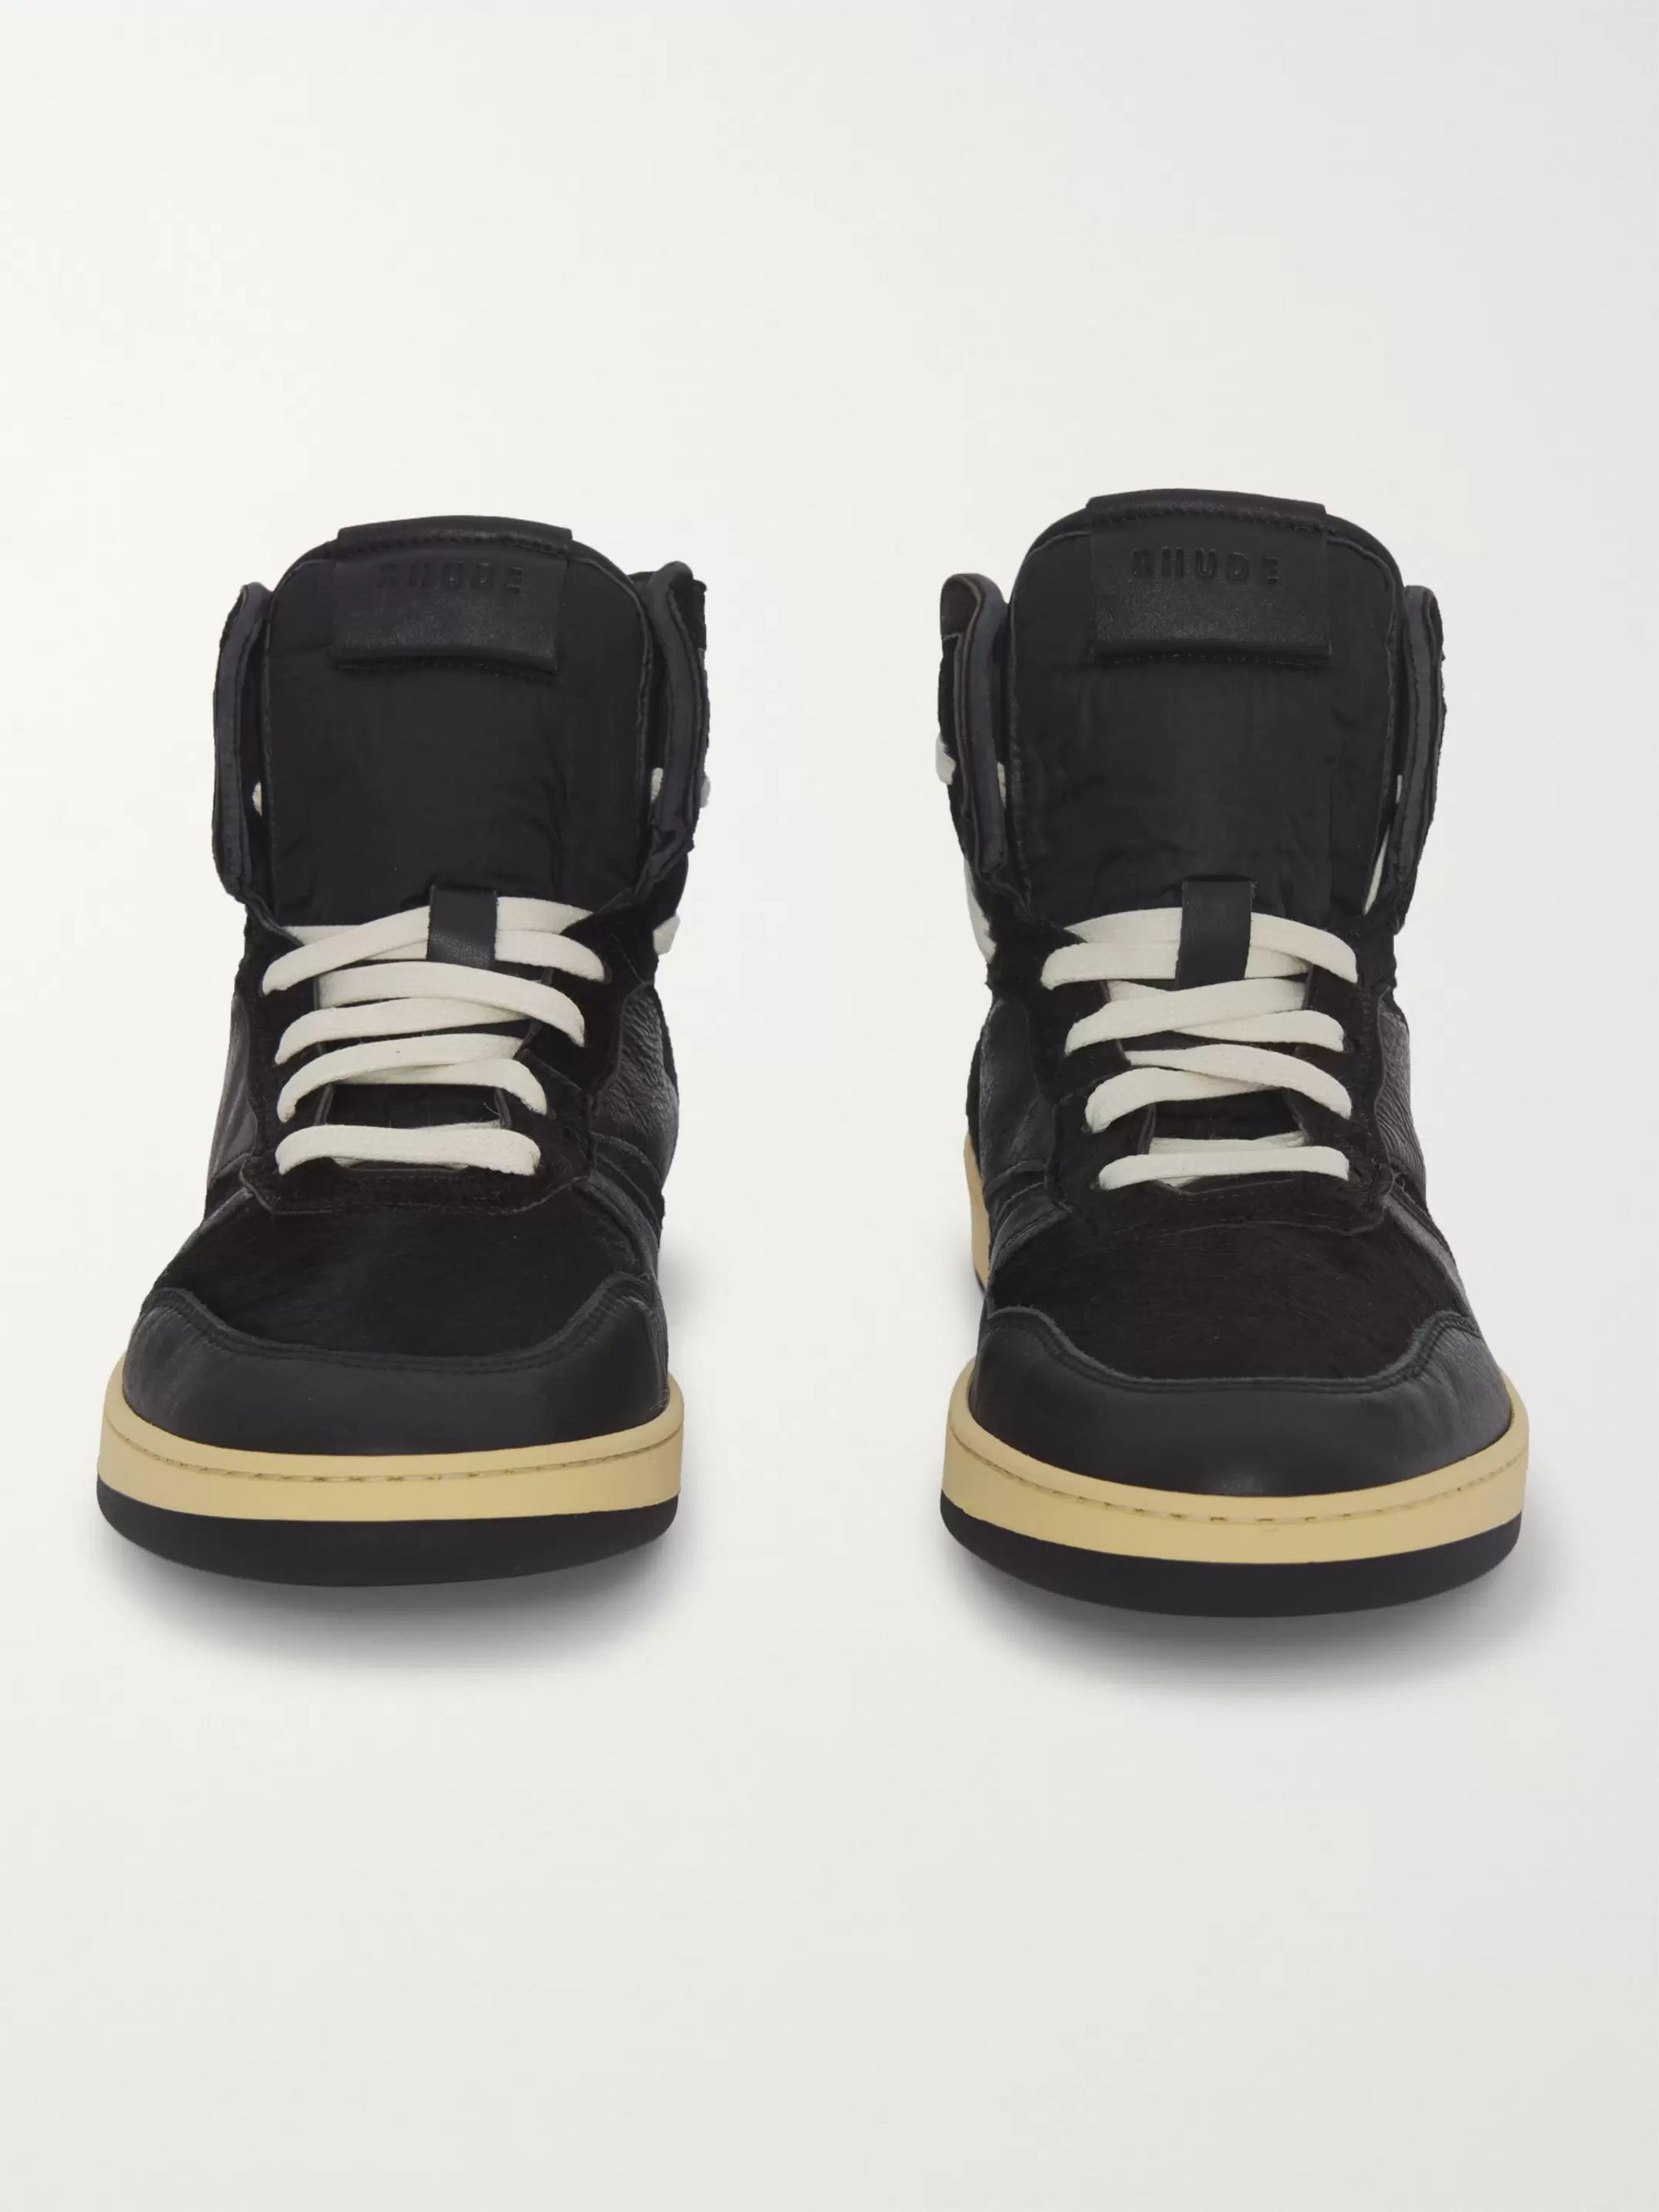 Rhude Rhecess Suede and Leather High-Top Sneakers